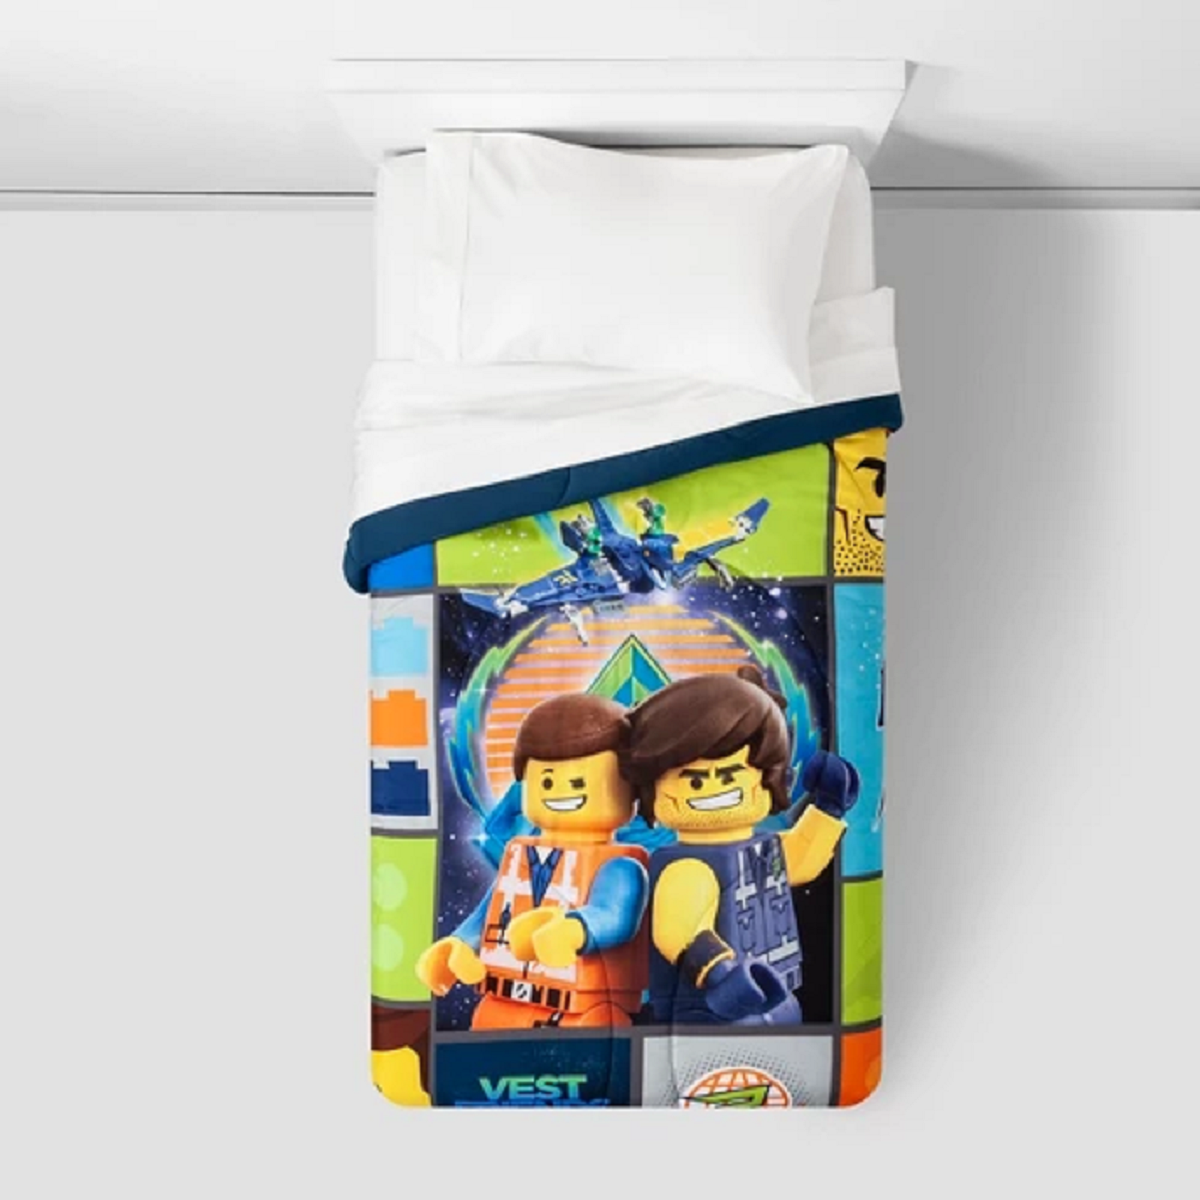 Lego Movie 2 Galactic Duo Twin Comforter and 3 Piece Twin Set with Pillow